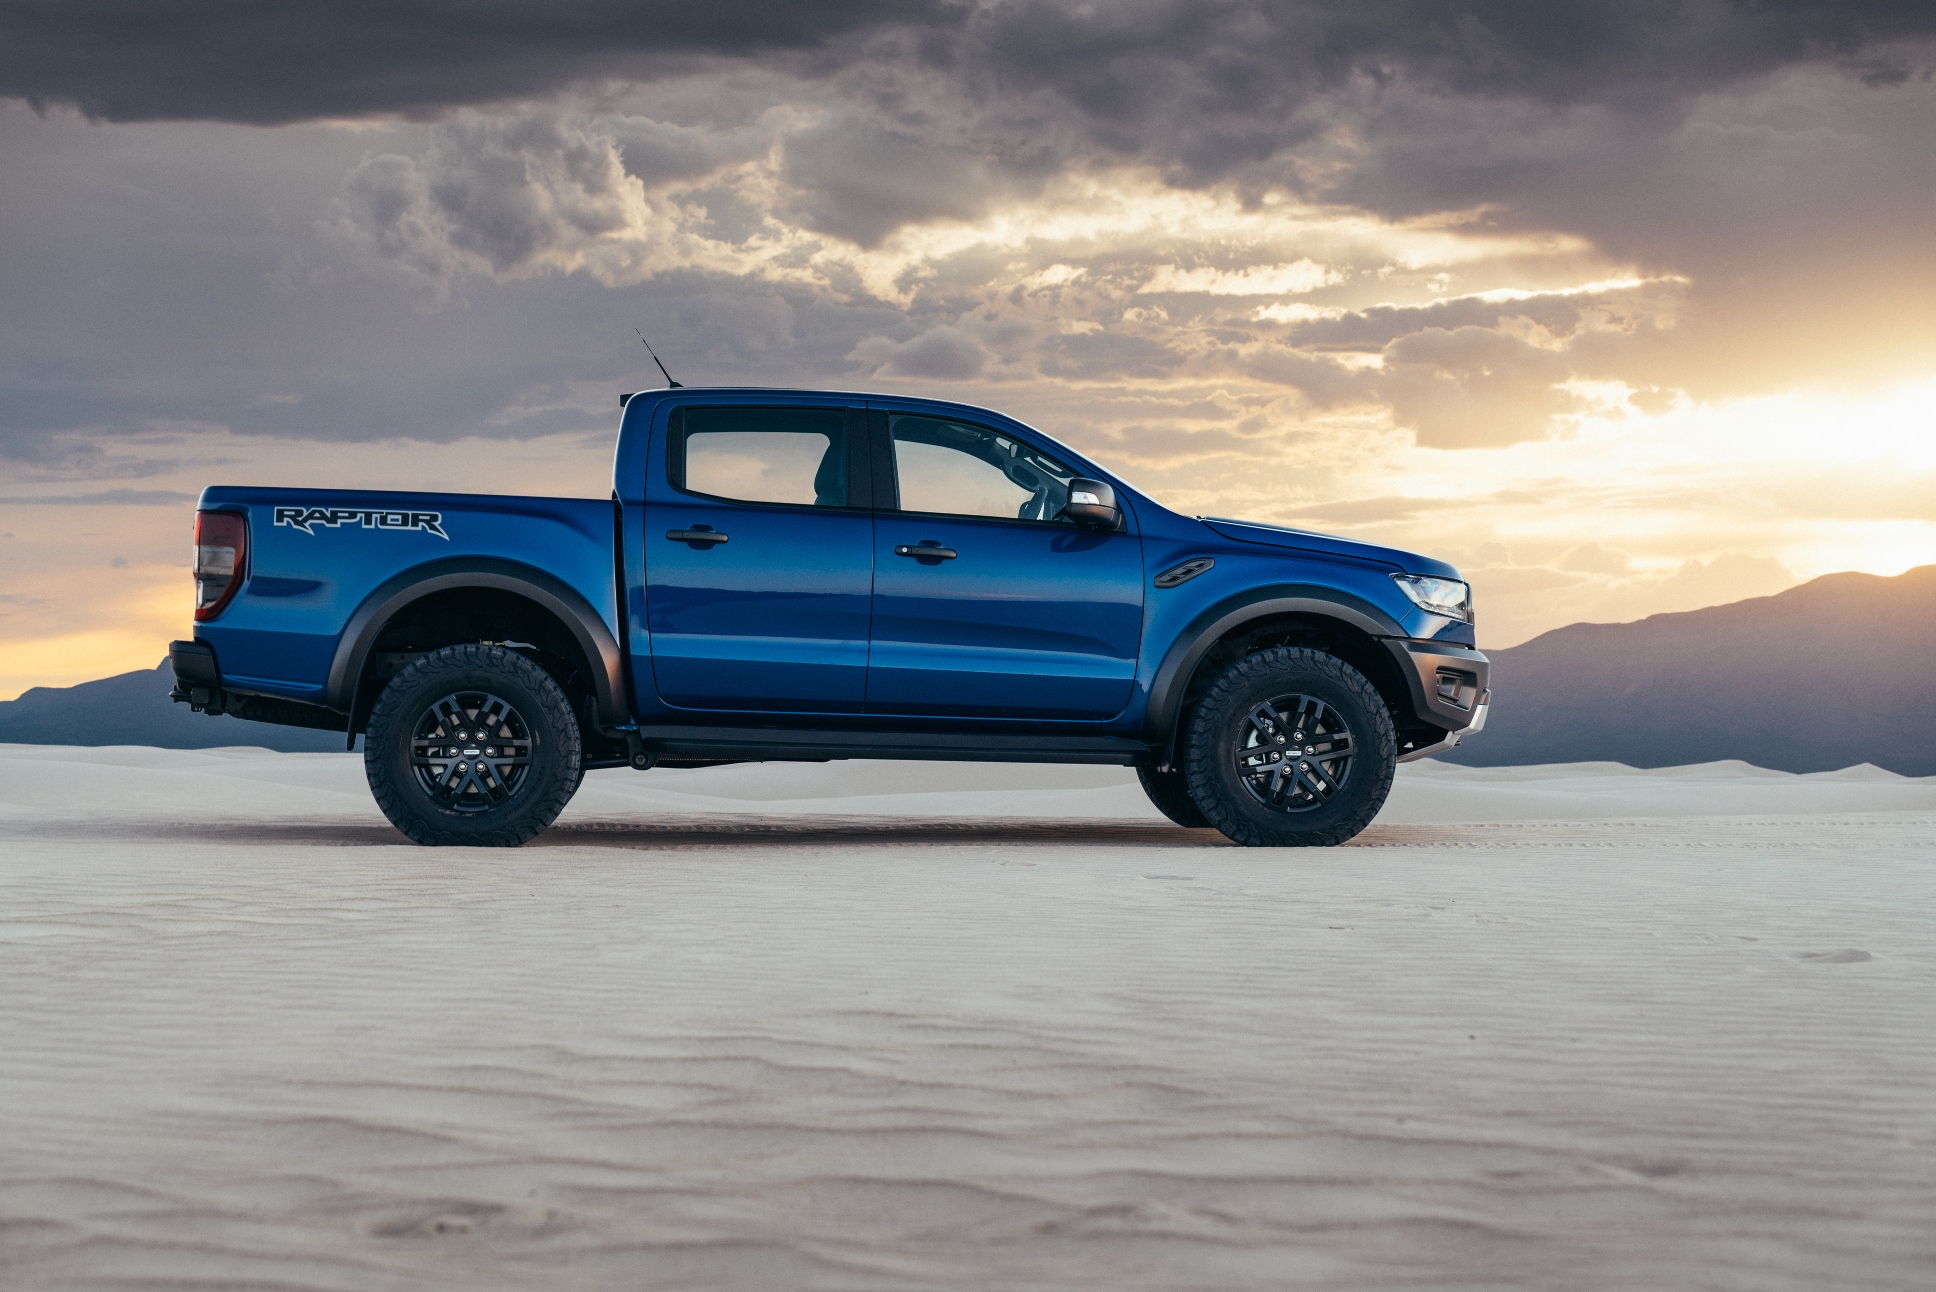 Ford Ranger Raptor Could Come To America With An EcoBoost V6